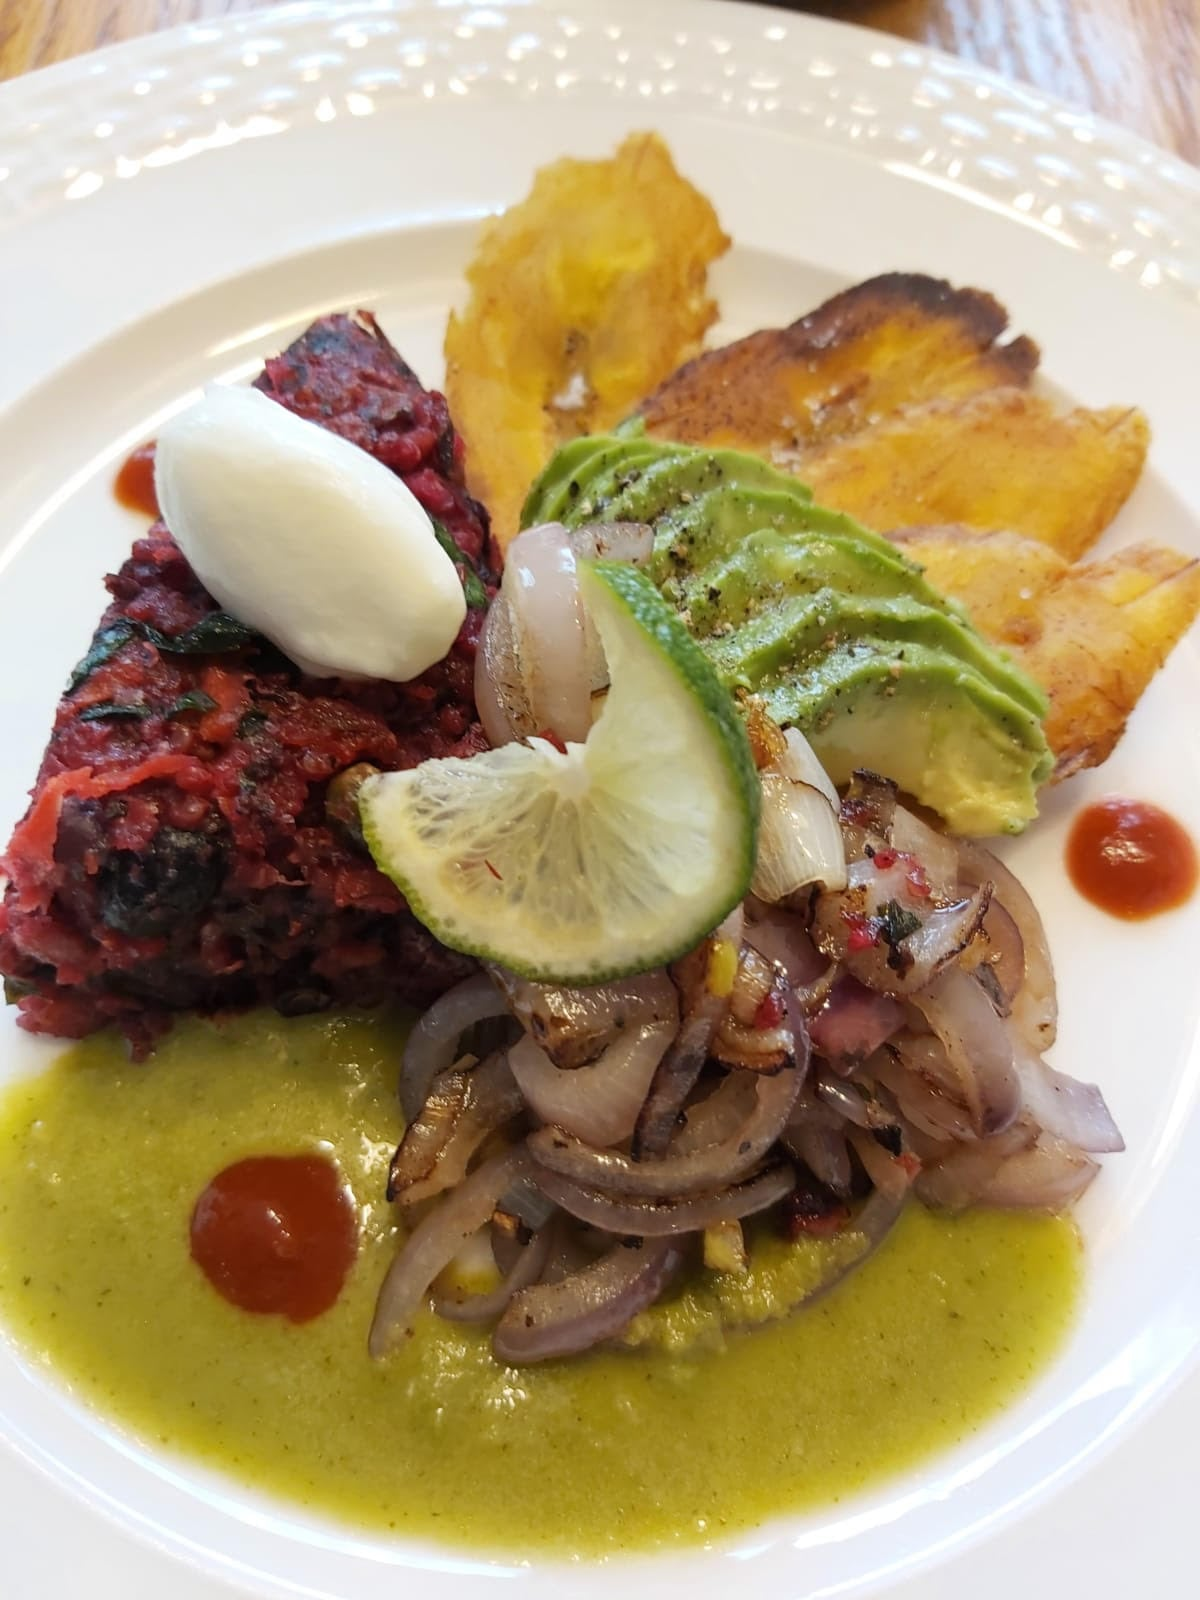 Vegetable hash with plantains and chimichurri